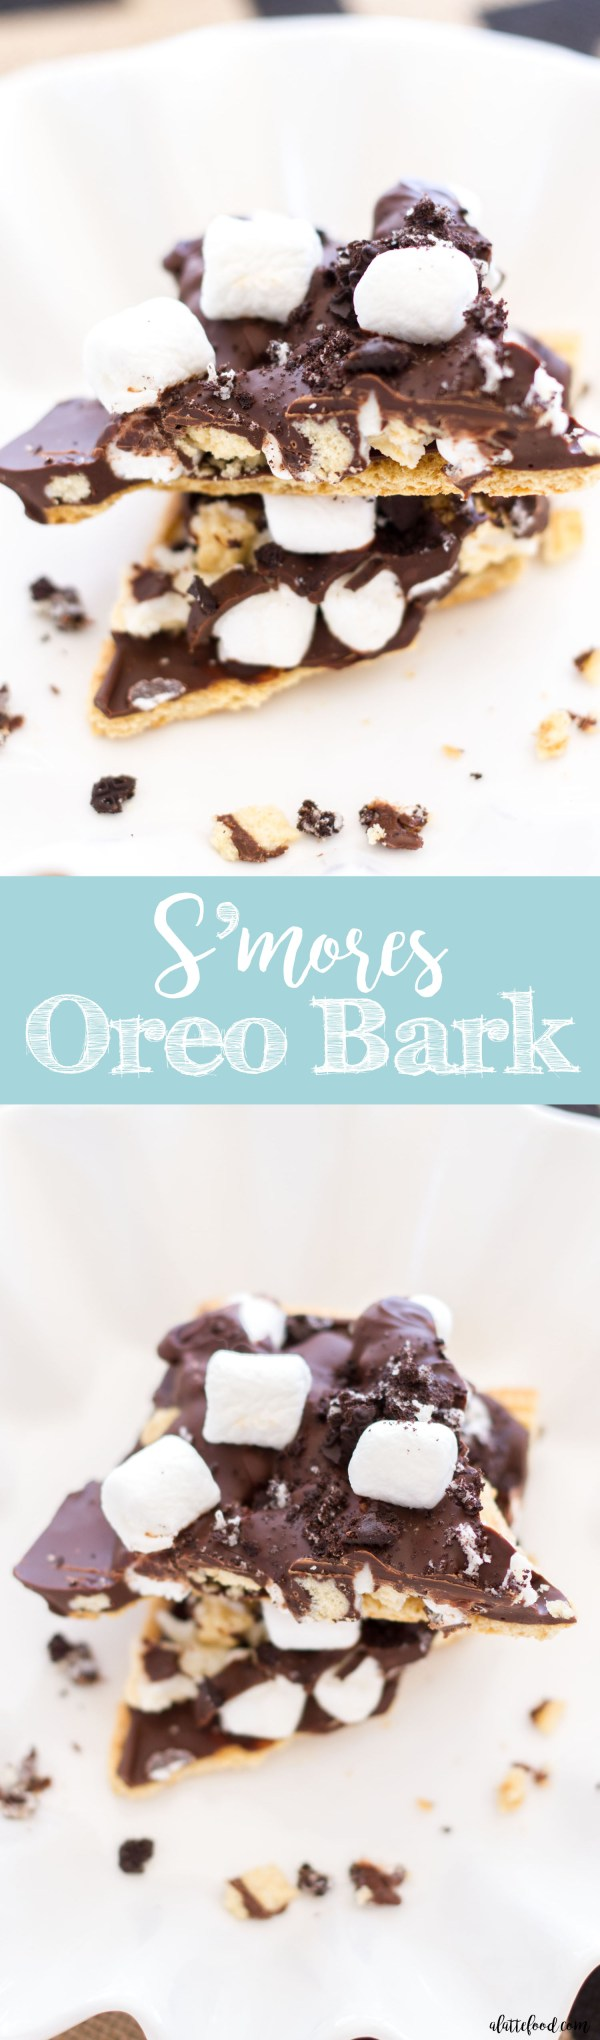 This easy s'mores oreo bark recipe is full of the classic s'more flavors! The perfect summer snack or dessert!